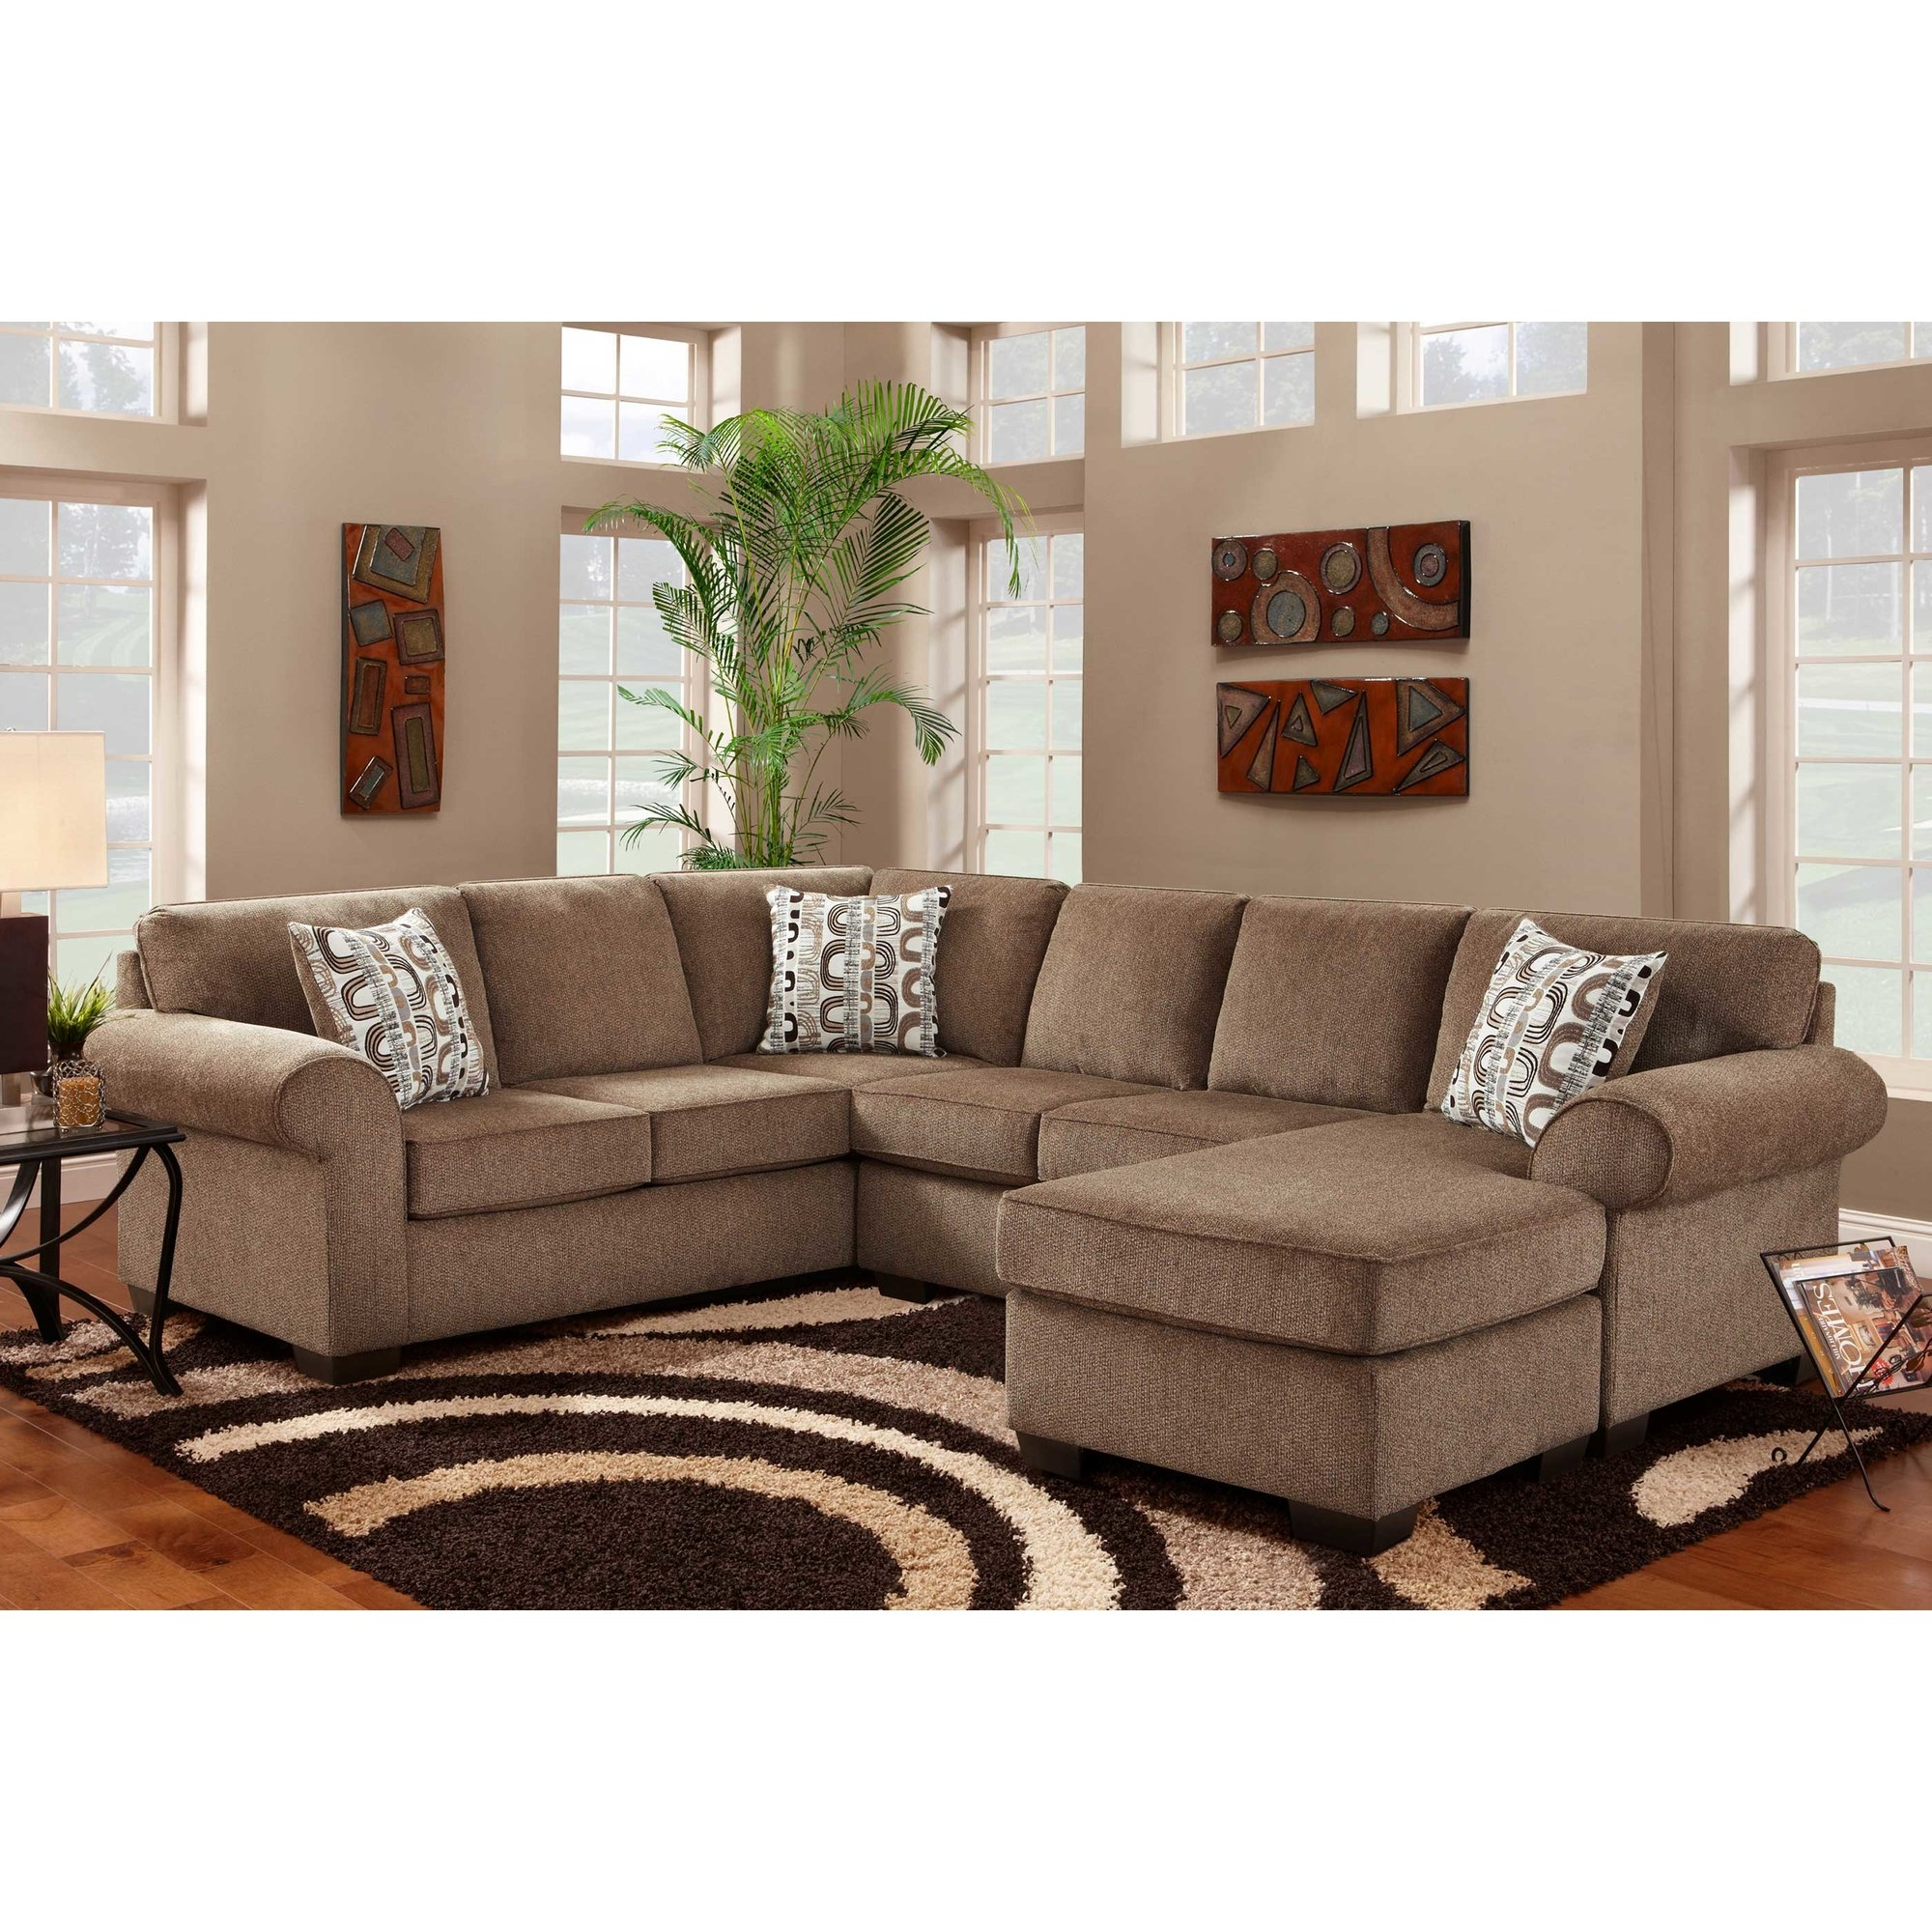 12 Collection of Chenille Sectional Sofas